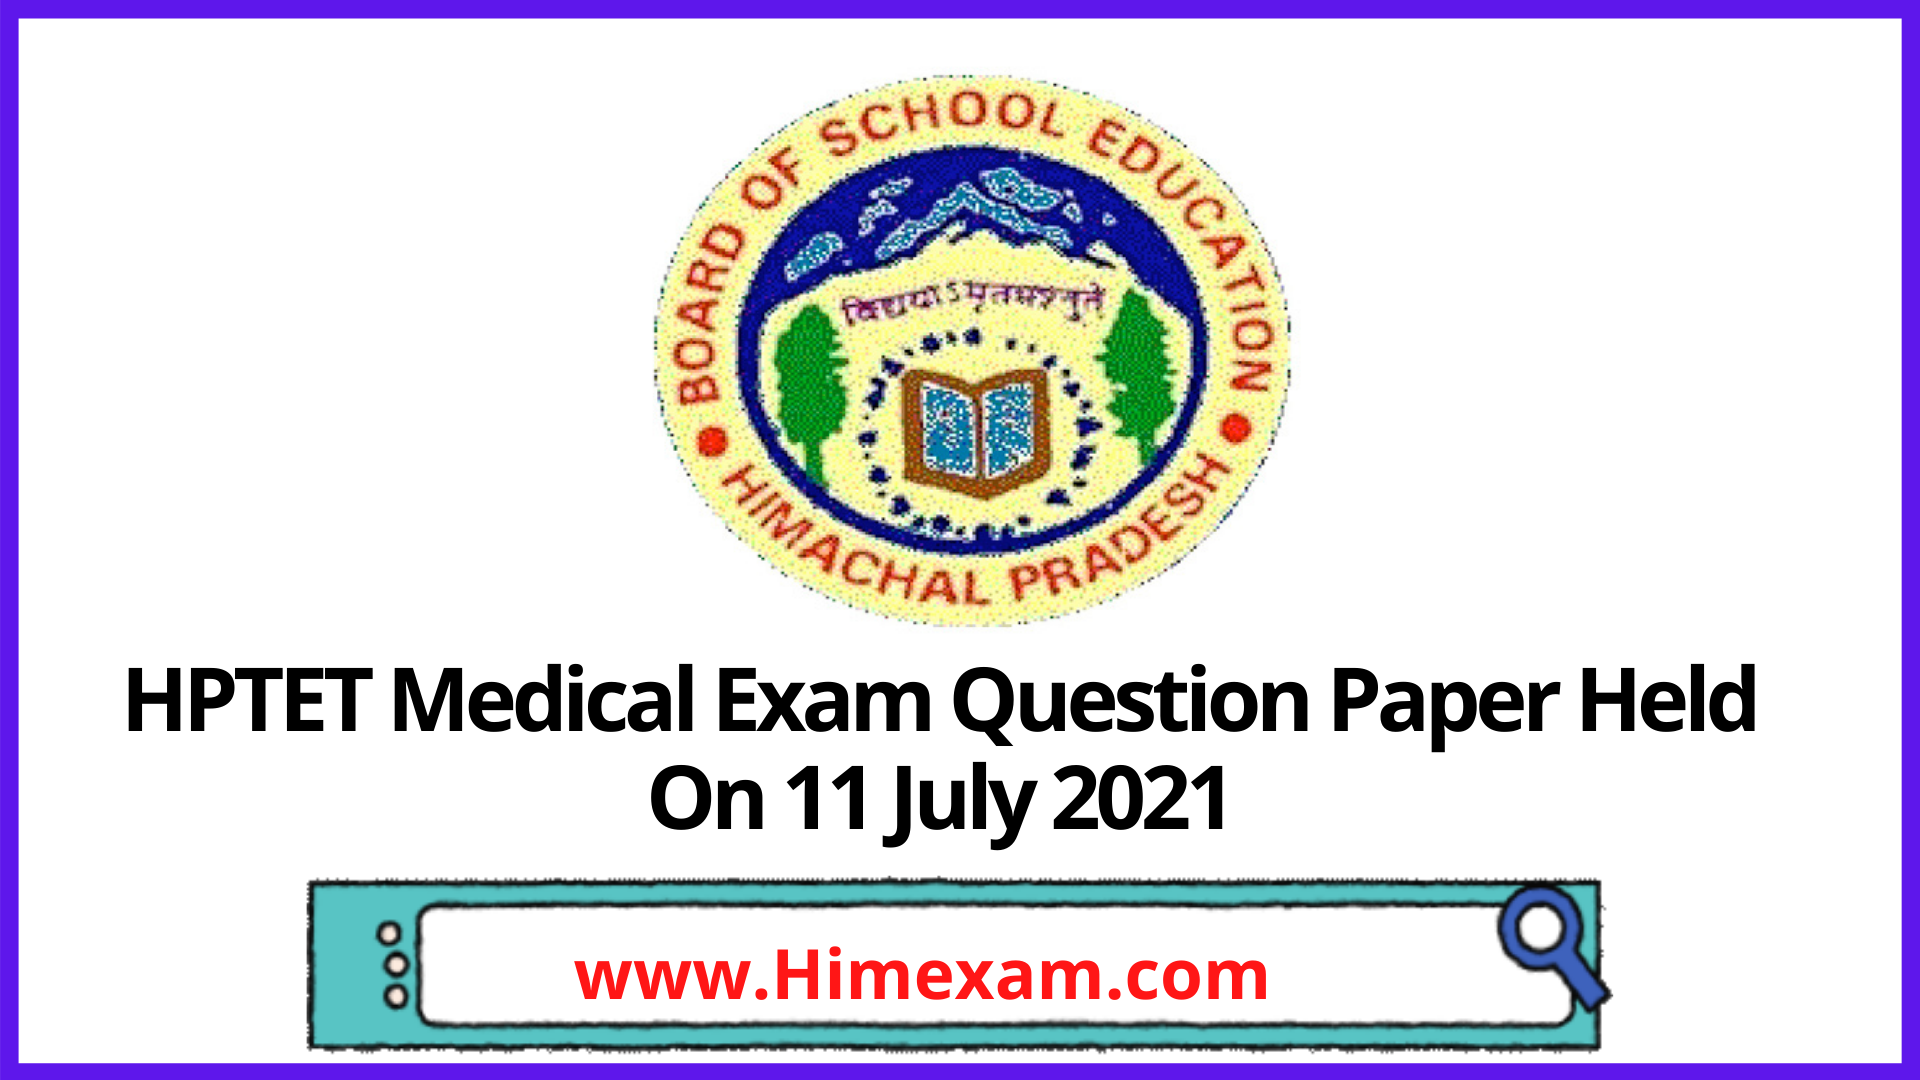 HPTET Medical Exam Question Paper Held On 11 July 2021